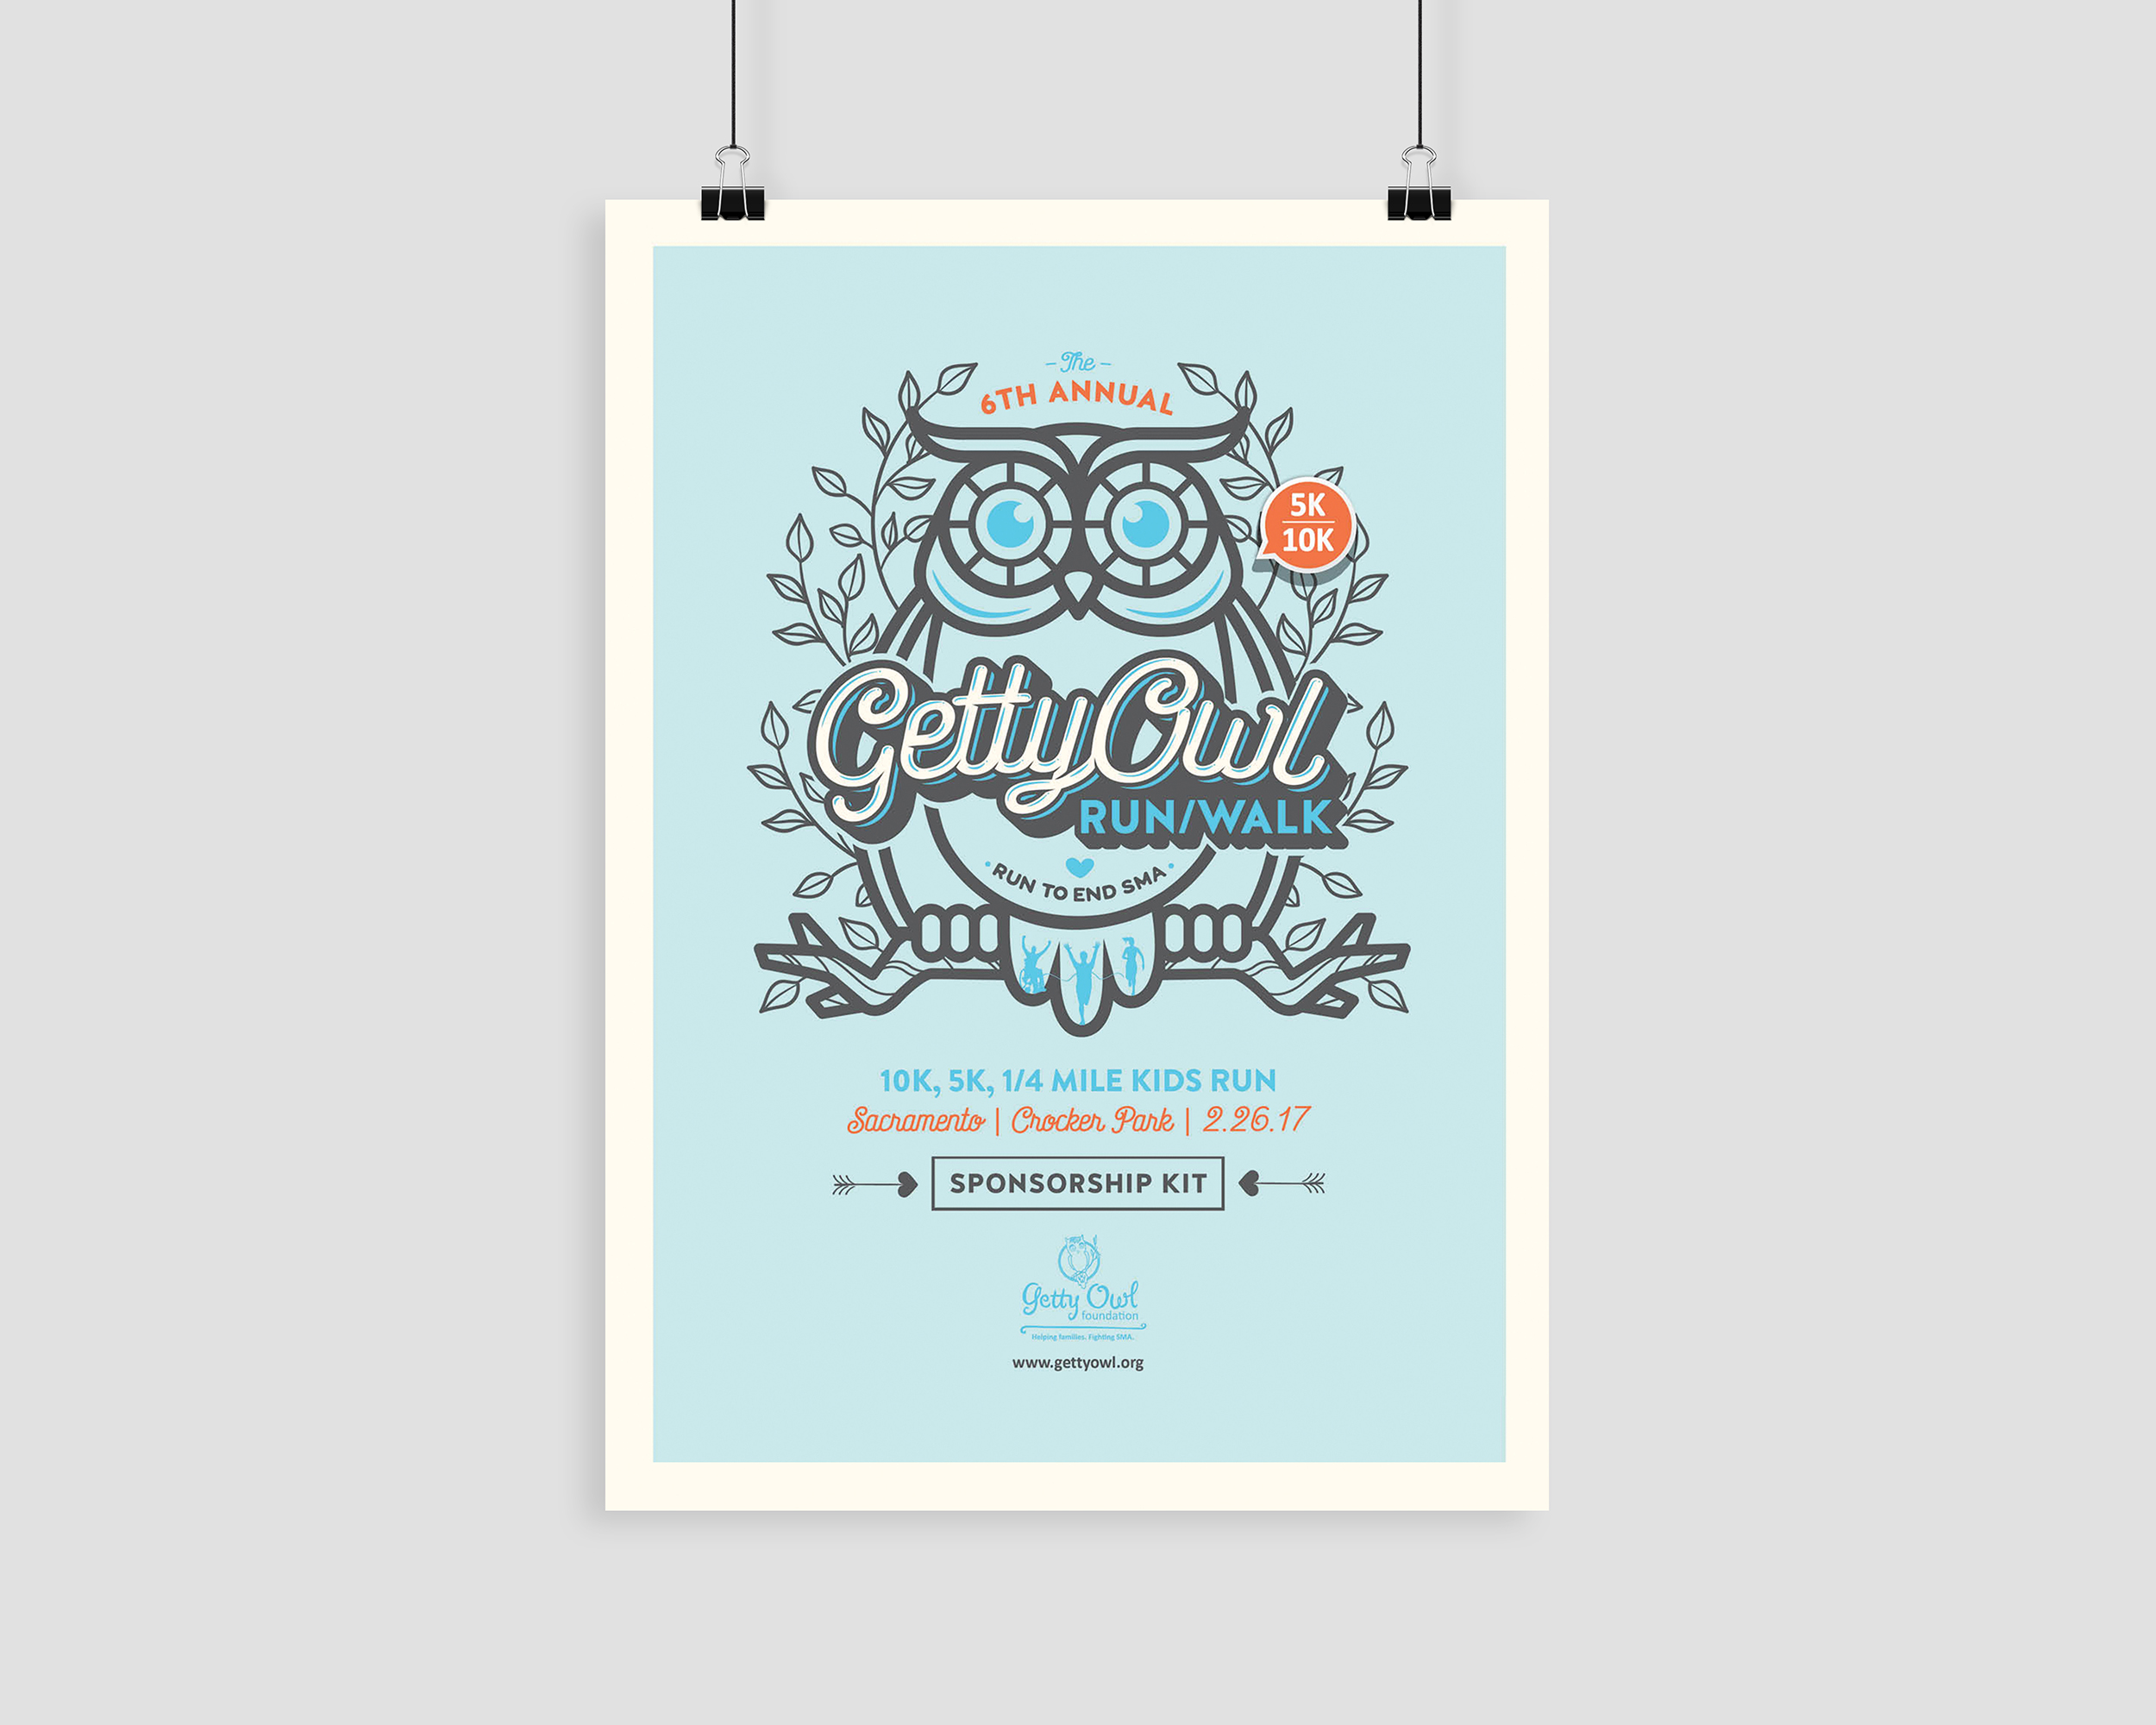 6th Annual Getty Owl Run/Walk Poster